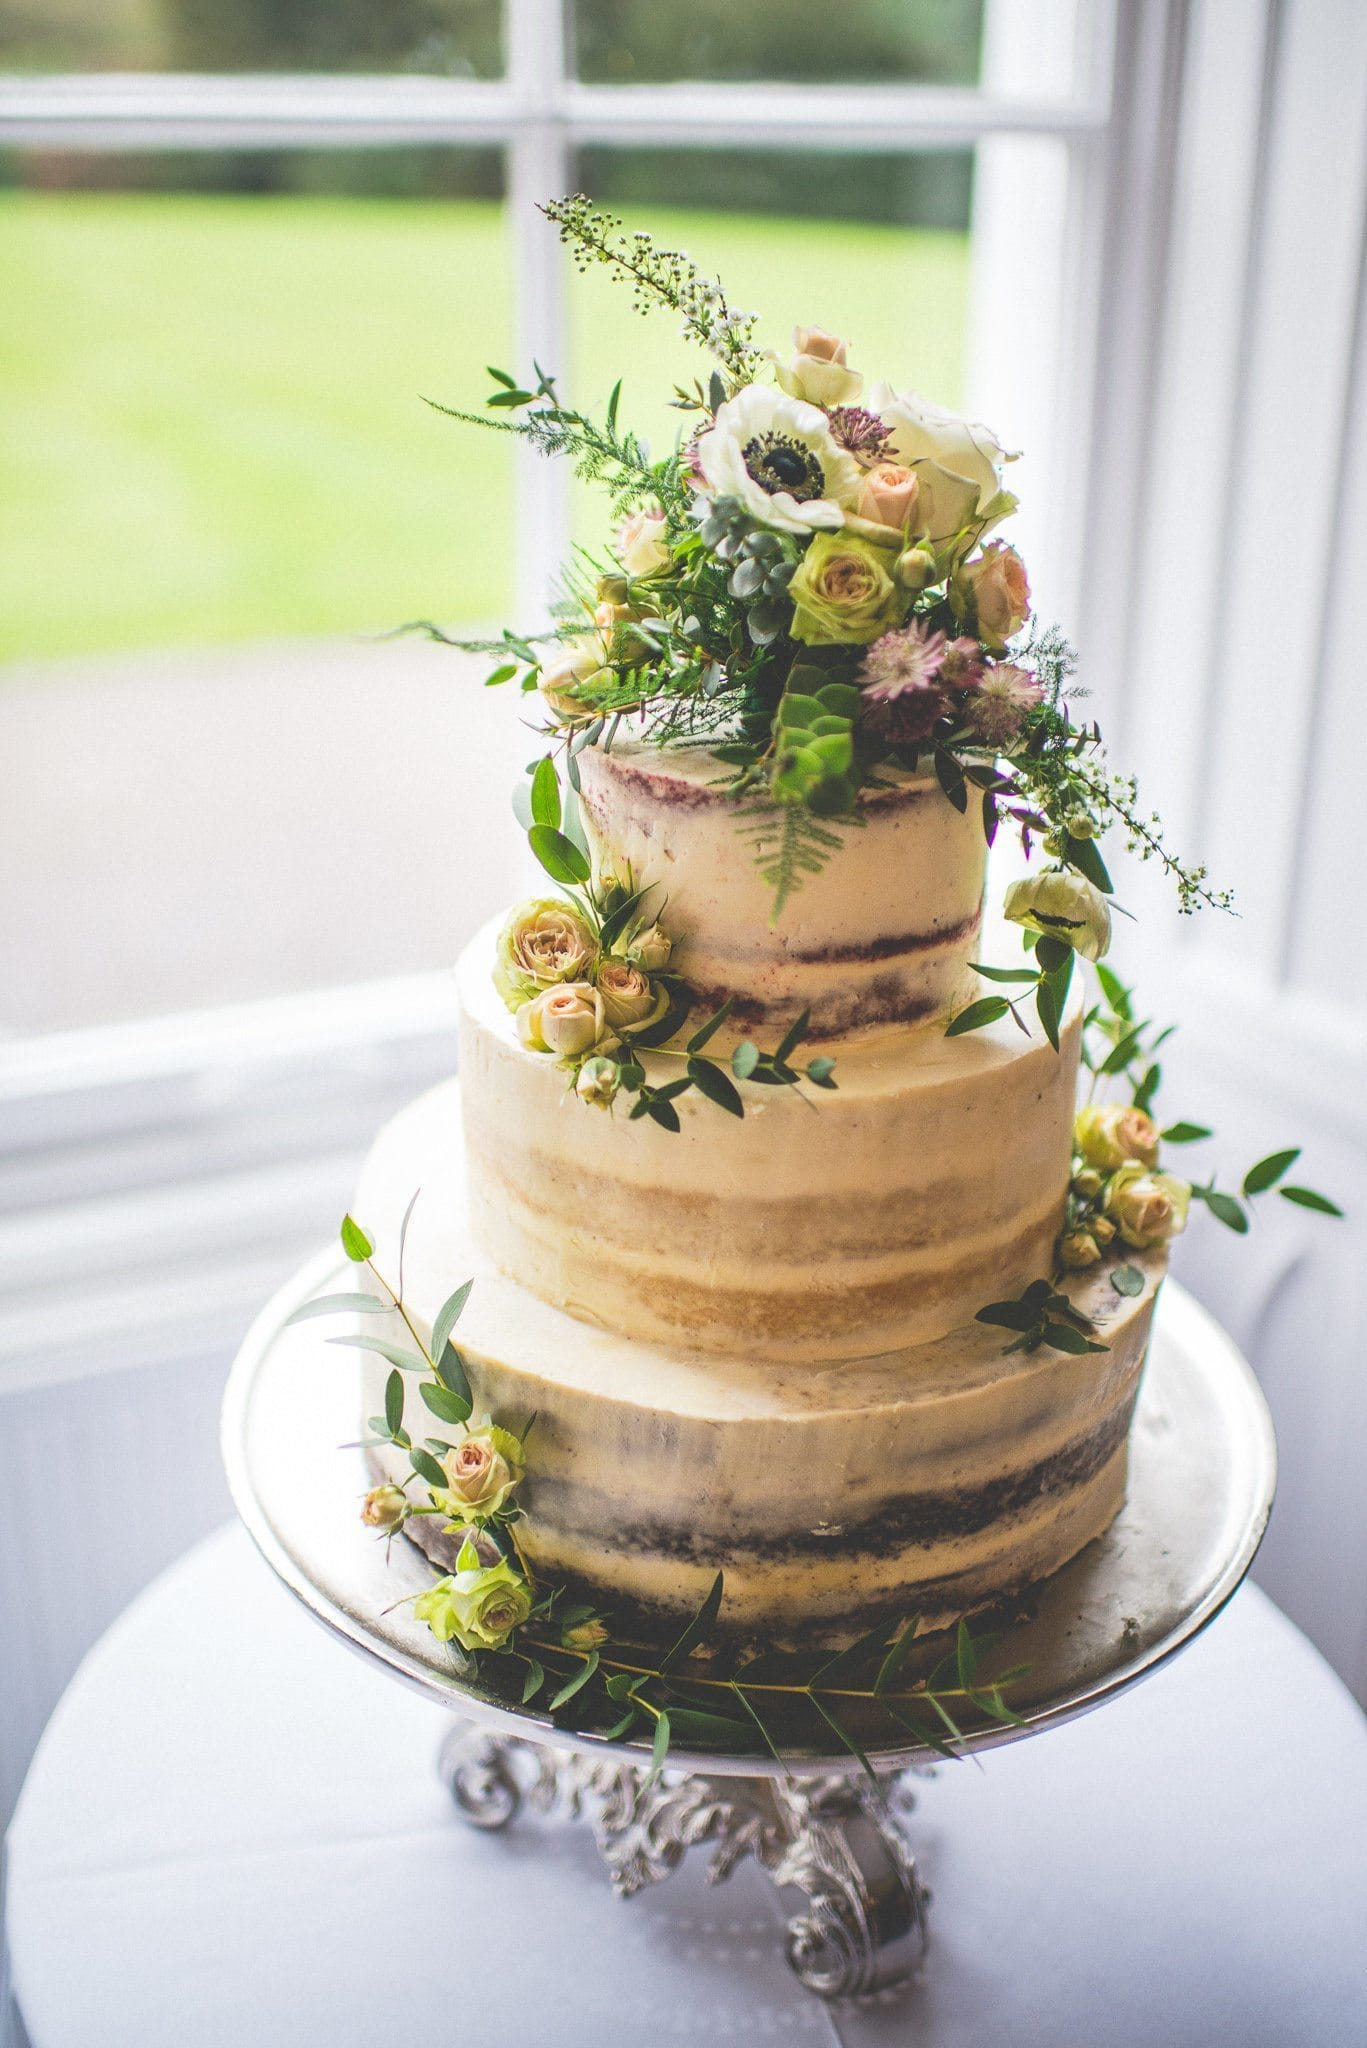 The semi-naked cake, with different flavoured sponge on each tier. It is decorated with beautiful fresh flowers.